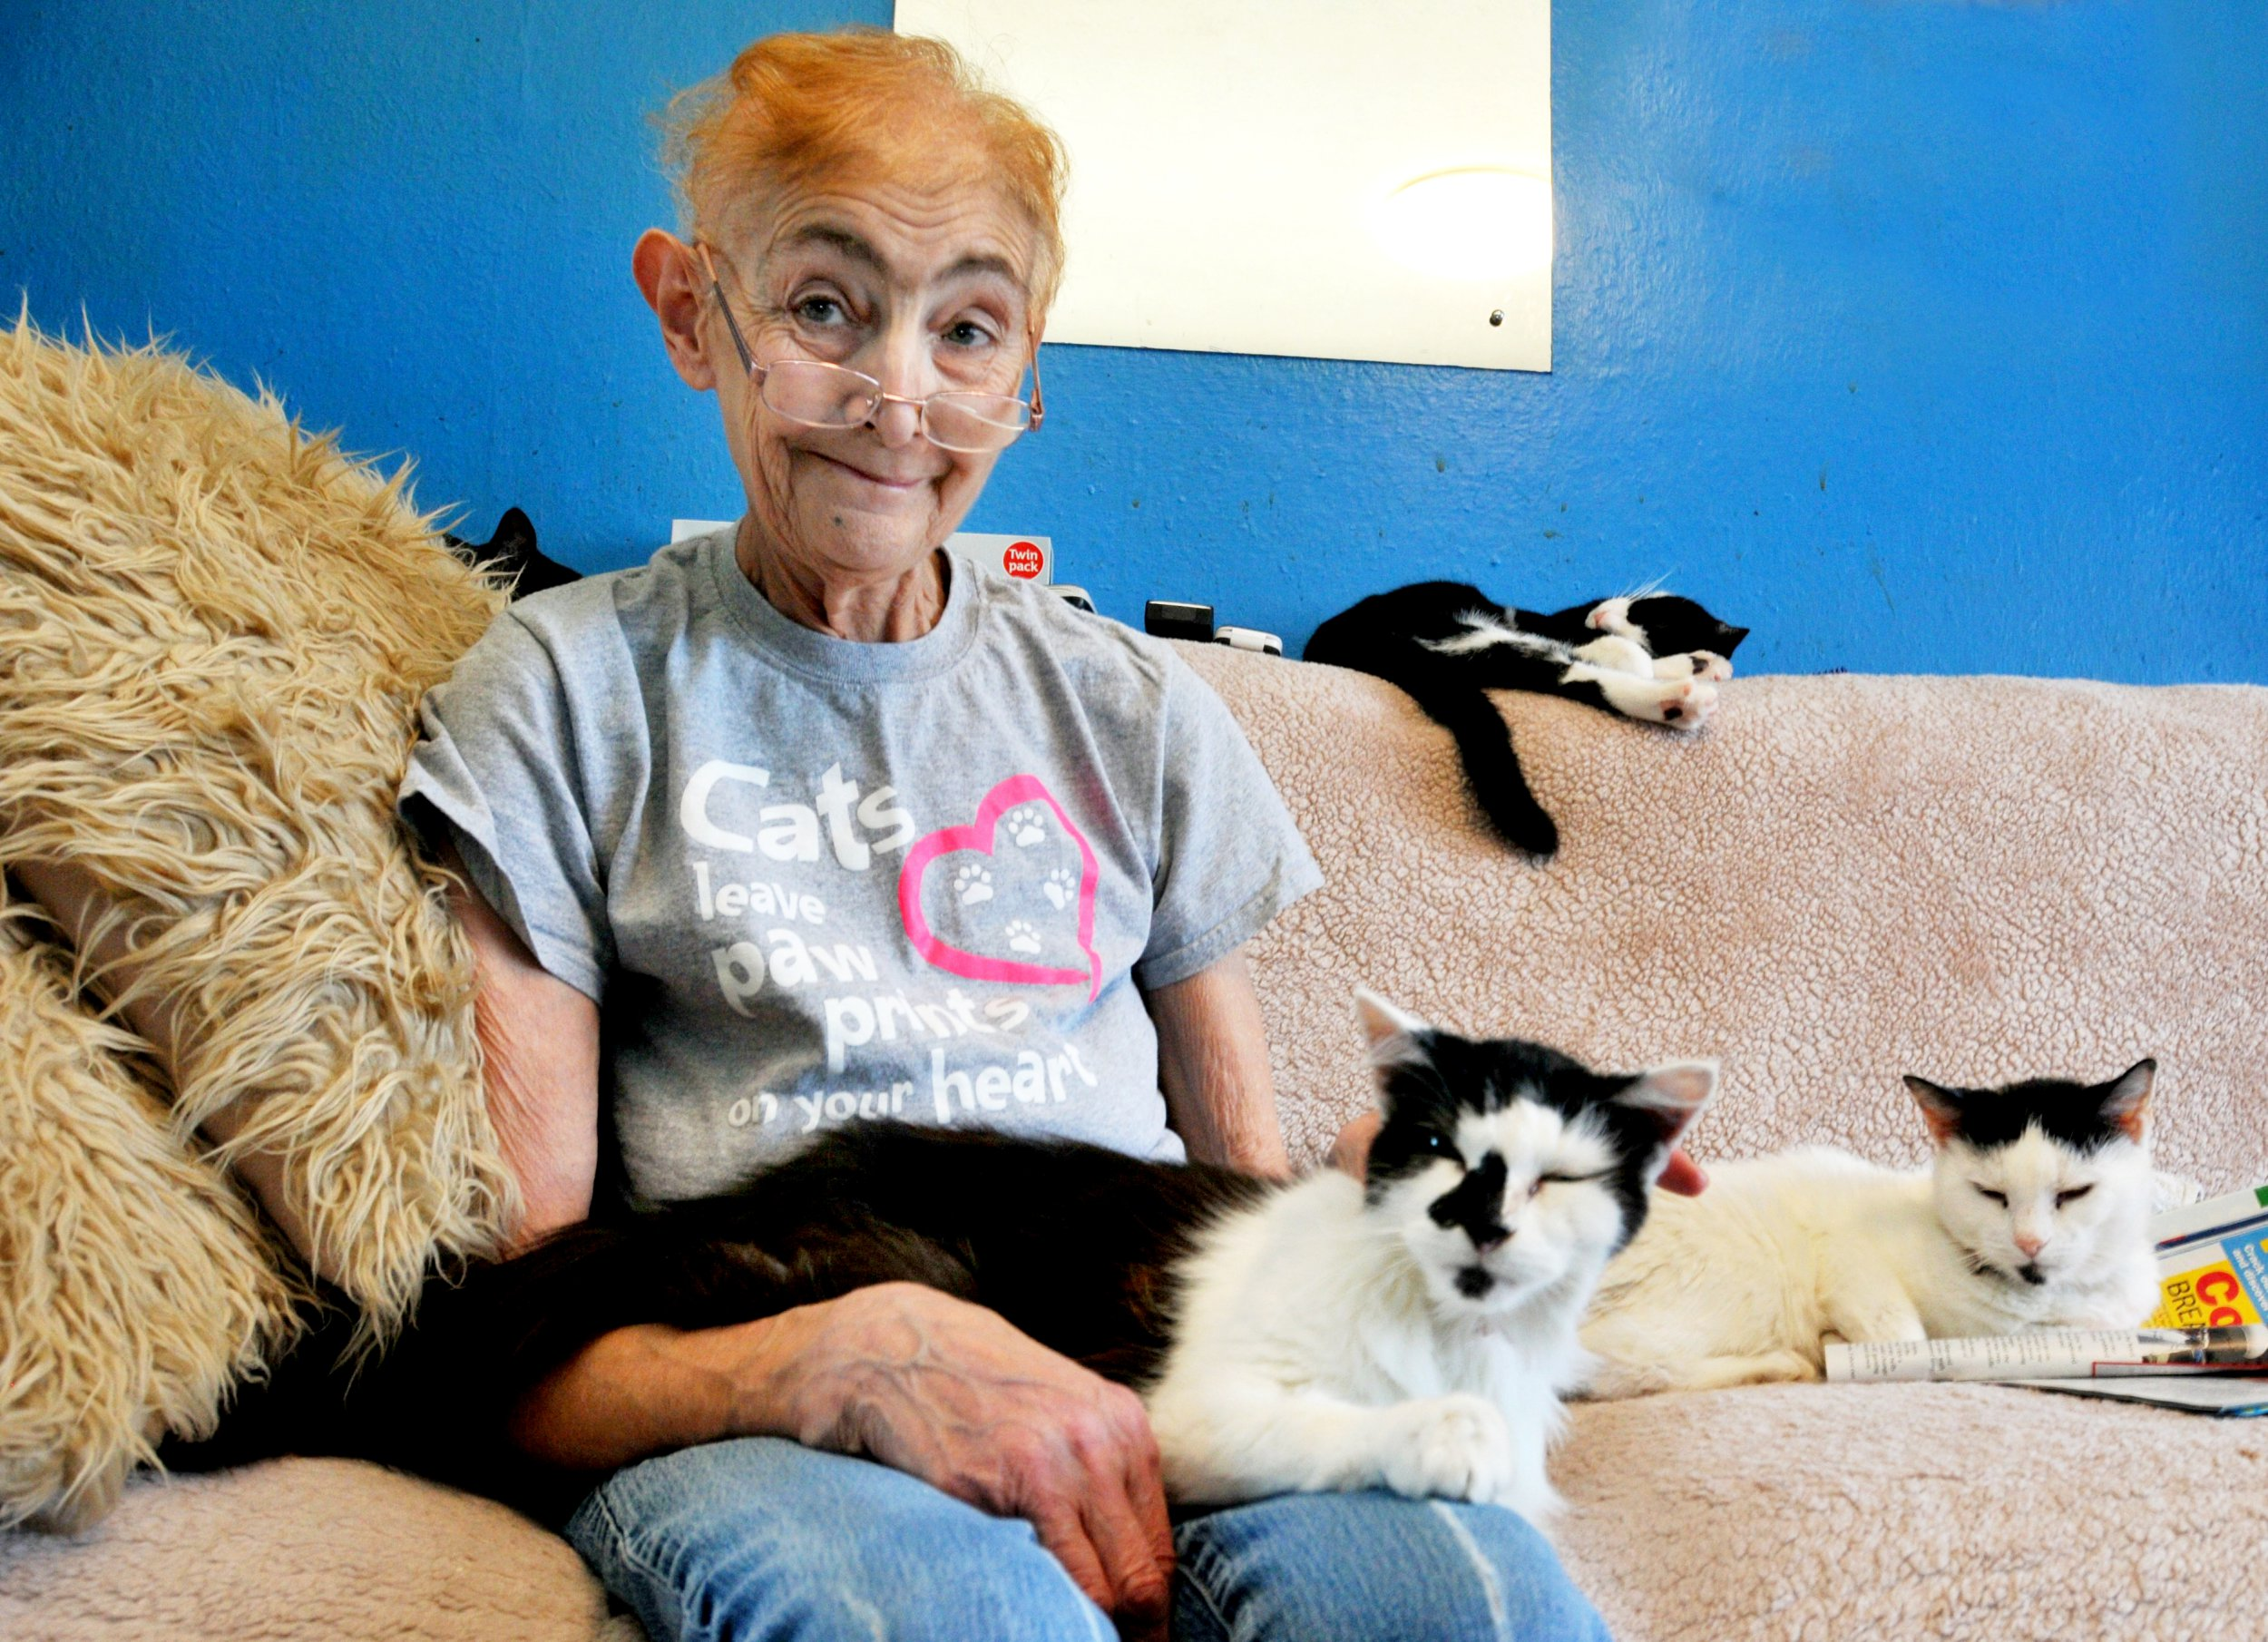 """Marlene Brewer runs animal sanctuary, Cats in Crisis, has been caring for vulnerable cats for over 20 years and has been forced to rehome 70 cats after being diagnosed with terminal cancer. See ROSS PARRY story RPYCATS. A woman who rescued thousands of cats in her lifetime is in a race against time to find homes for 40 of them - after being diagnosed with terminal lung cancer. Seven weeks ago Marlene Brewer, who runs cat rescue charity, Cats in Crisis, from her home was told the devastating news she would not live to see Christmas. She has so far managed to rehome 30 of the 70 cats she was caring for but needs help to find forever homes for the rest. The mother-of-four set up the charity in her home in Bamber Bridge, Lancs., 21 years ago and up until a few weeks ago had more than 80 feline friends. Sadly around 10 cats that were not rehomeable and had health problems were put down last week, which Marlene described as """"just awful""""."""